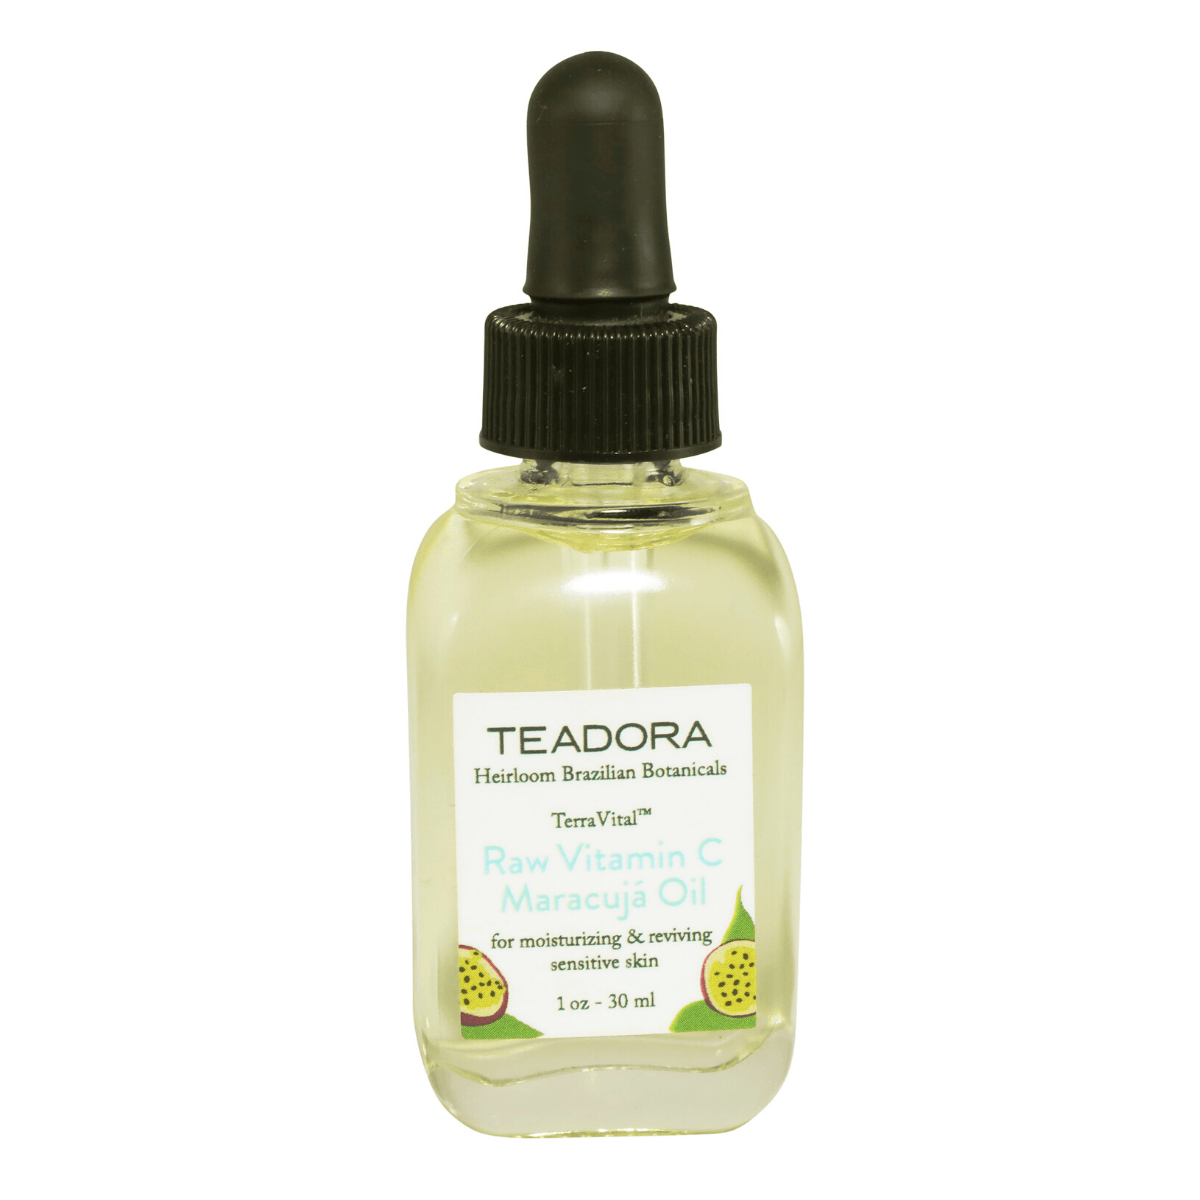 Raw Vitamin C Maracujá Oil - Teadora